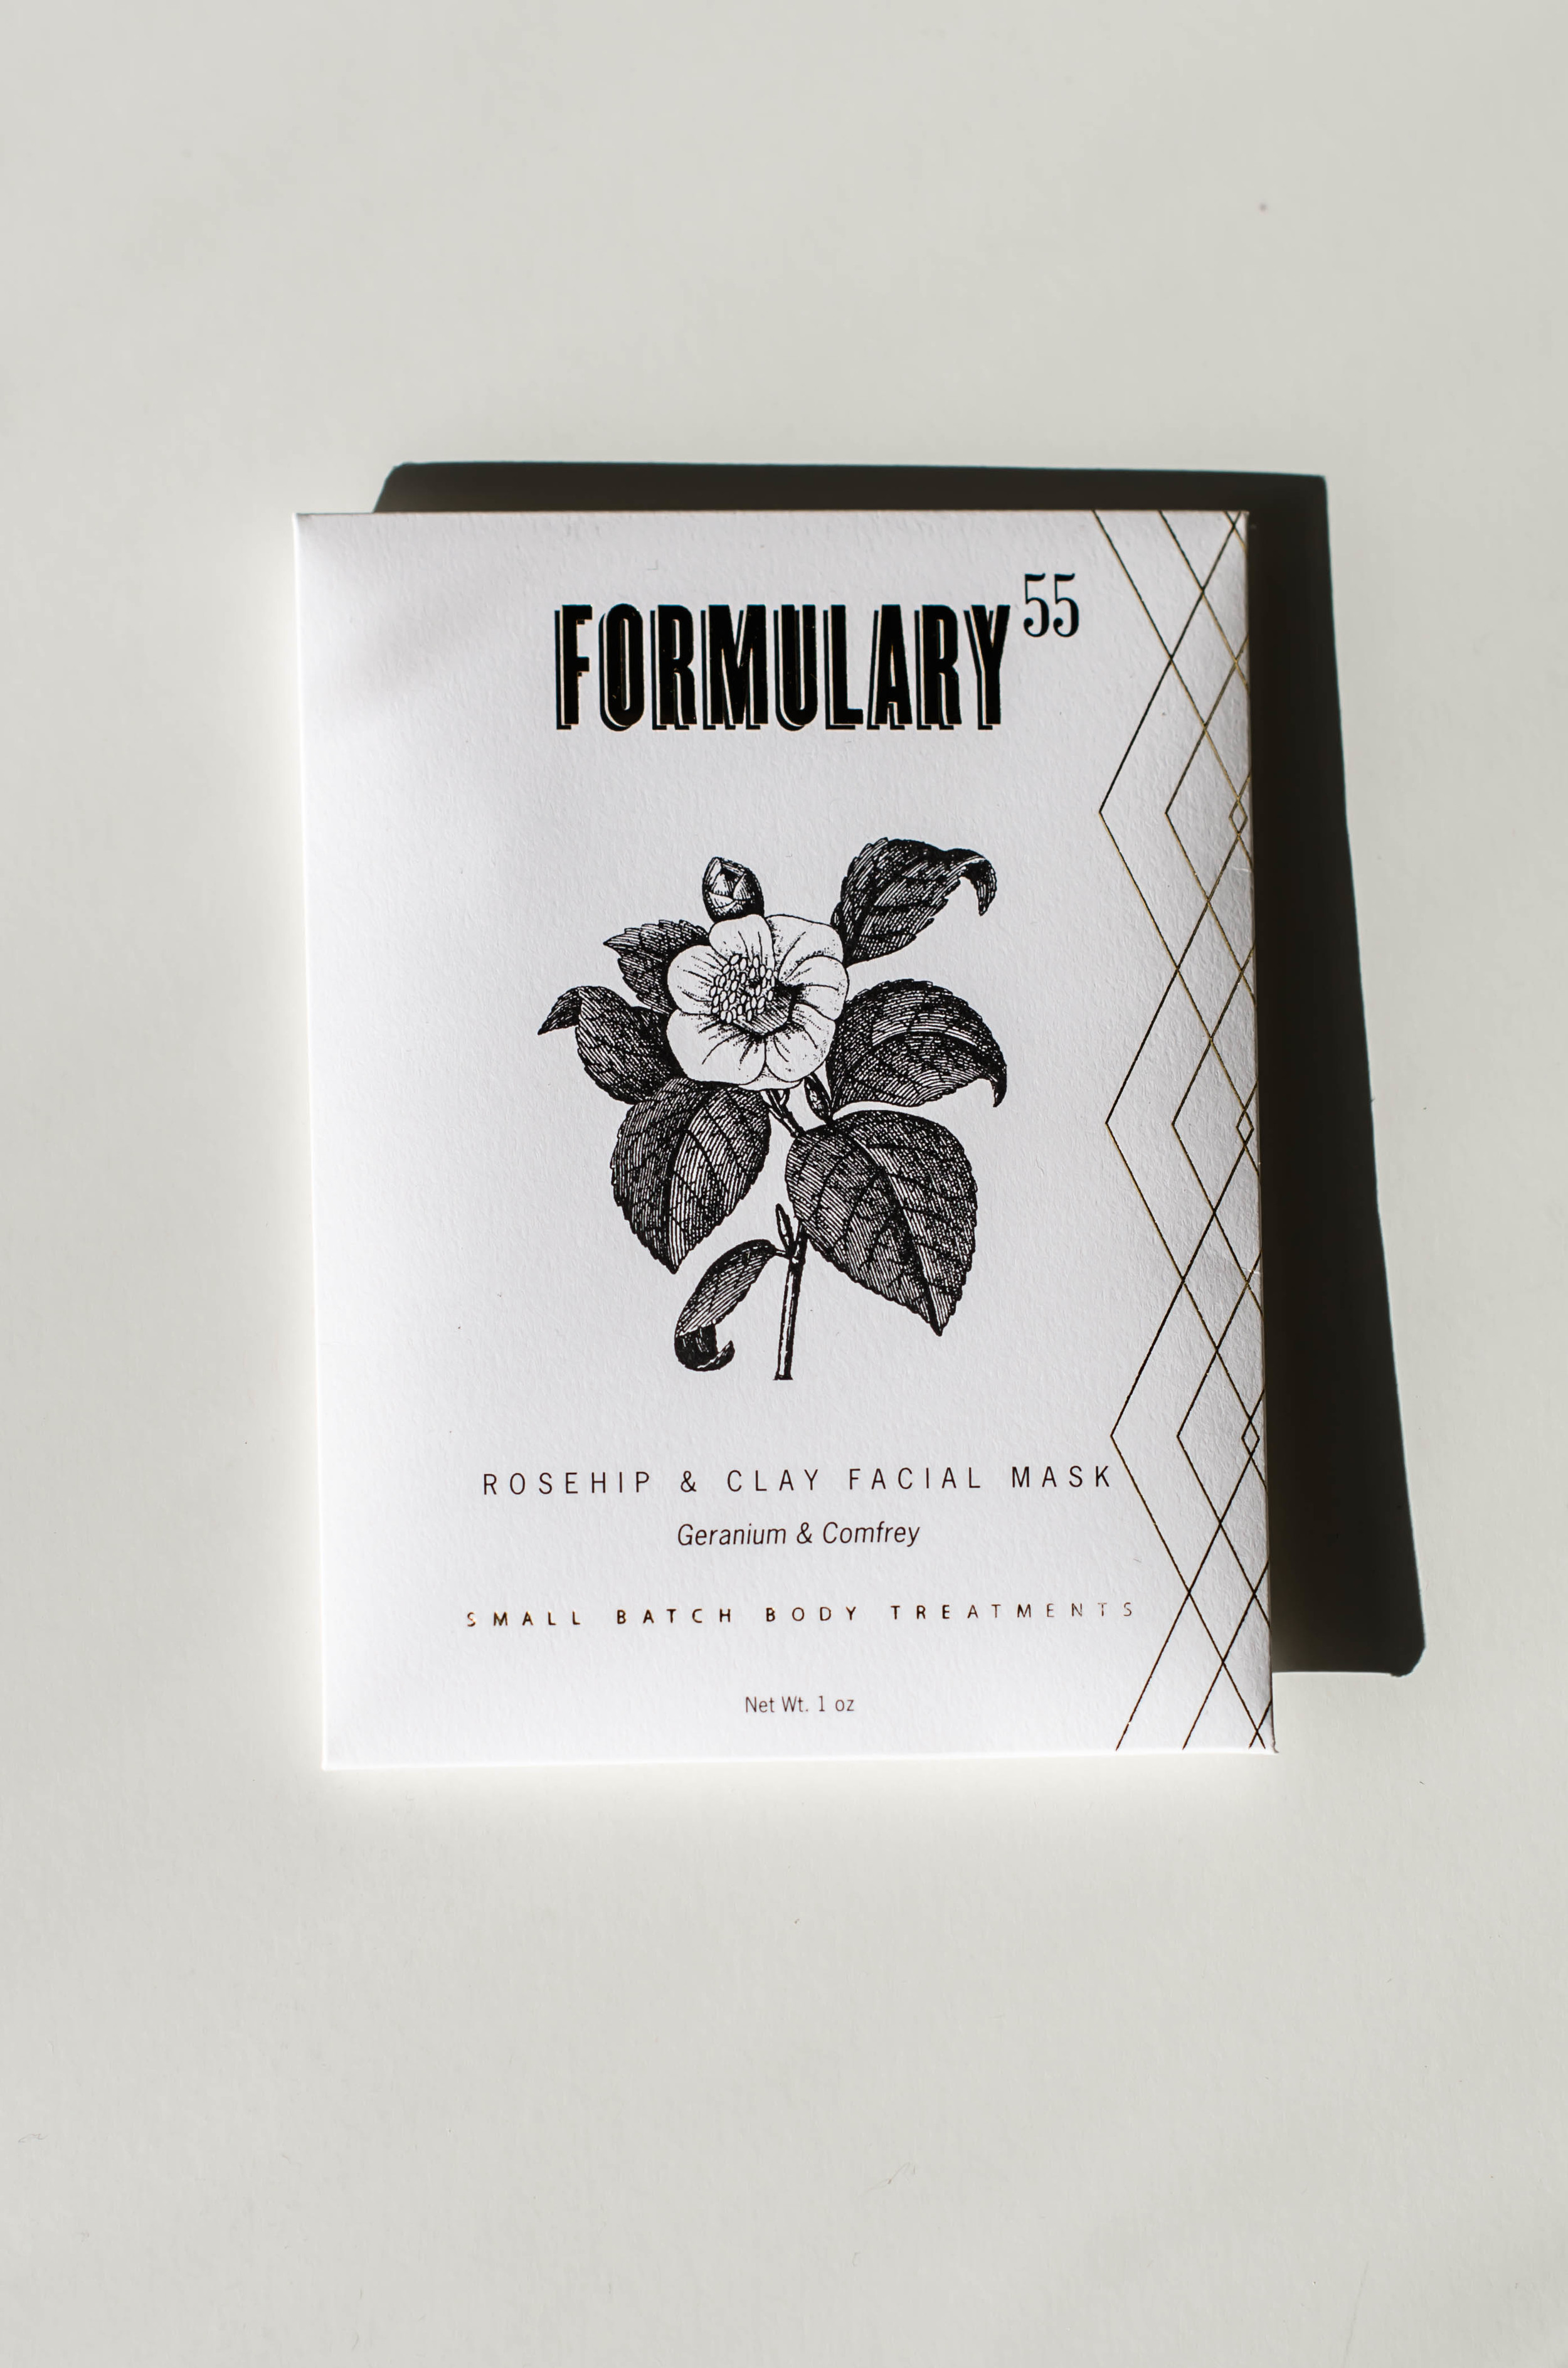 For the World Traveler |  Formulary 55 Rosehip & Clay Facial Mask